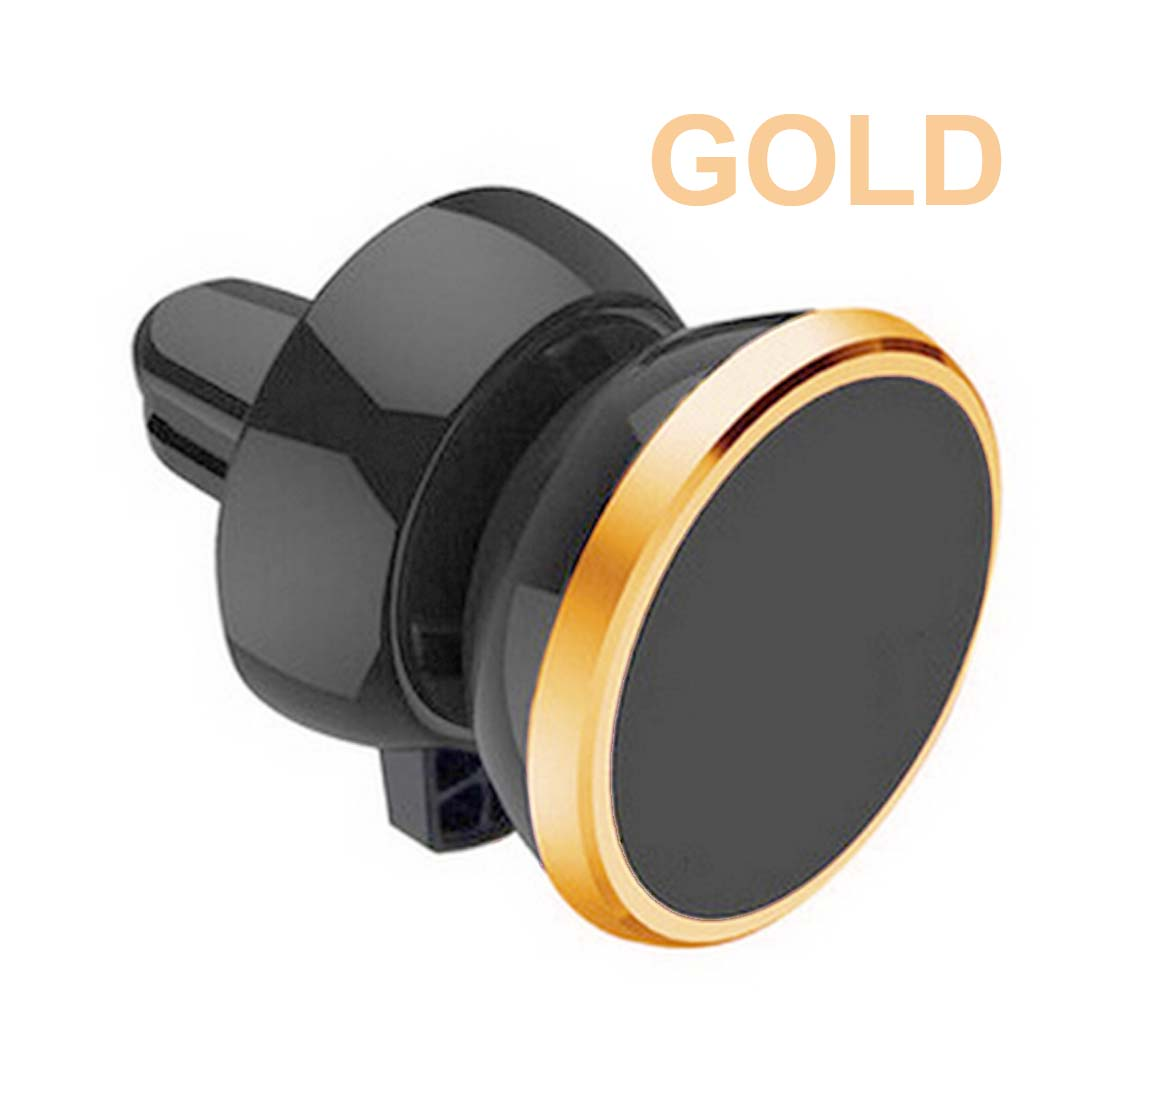 Gold Universal Magnetic 360 Rotating Car Air Vent Mount Bracket Phone Holder GPS